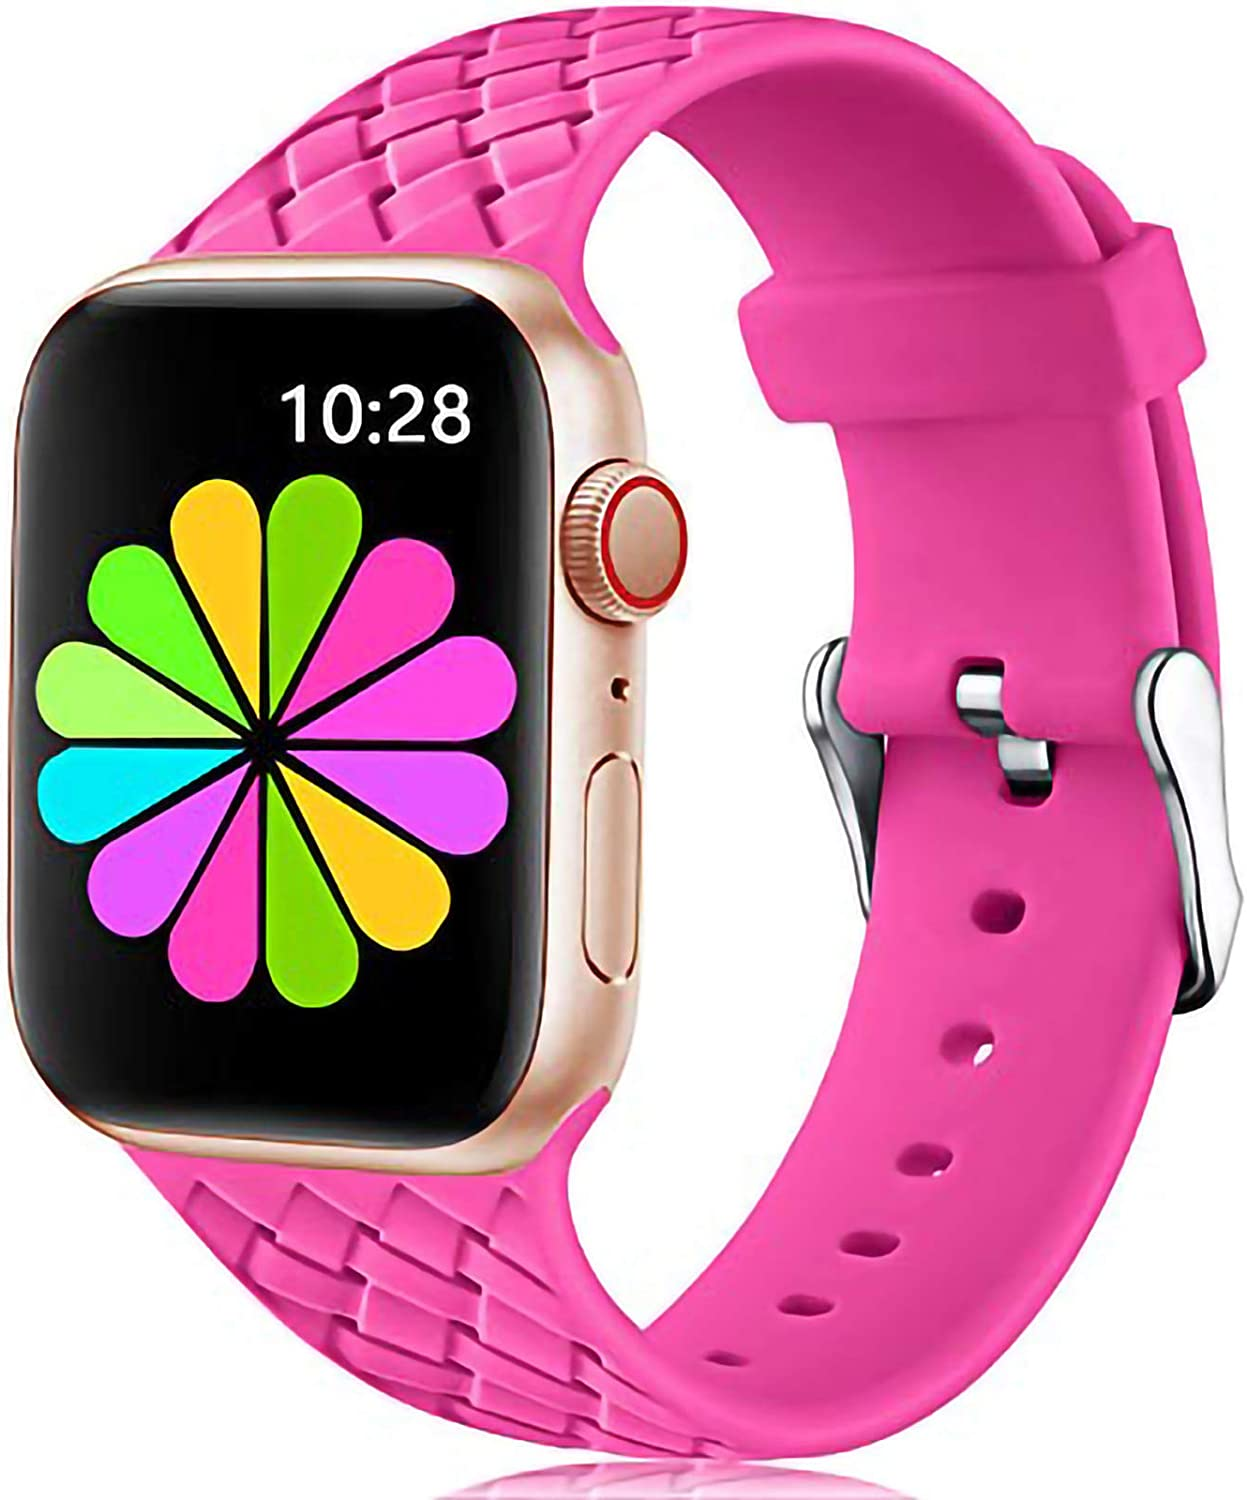 Haveda Compatible for Apple Watch SE, iWatch 40mm 38mm 42mm 44mm Band, Soft Cute Silicone Band for Apple Watch Series 6/5/4/3/2/1, Comfortable Flexible Textured Weave Pattern Wristband Small Large